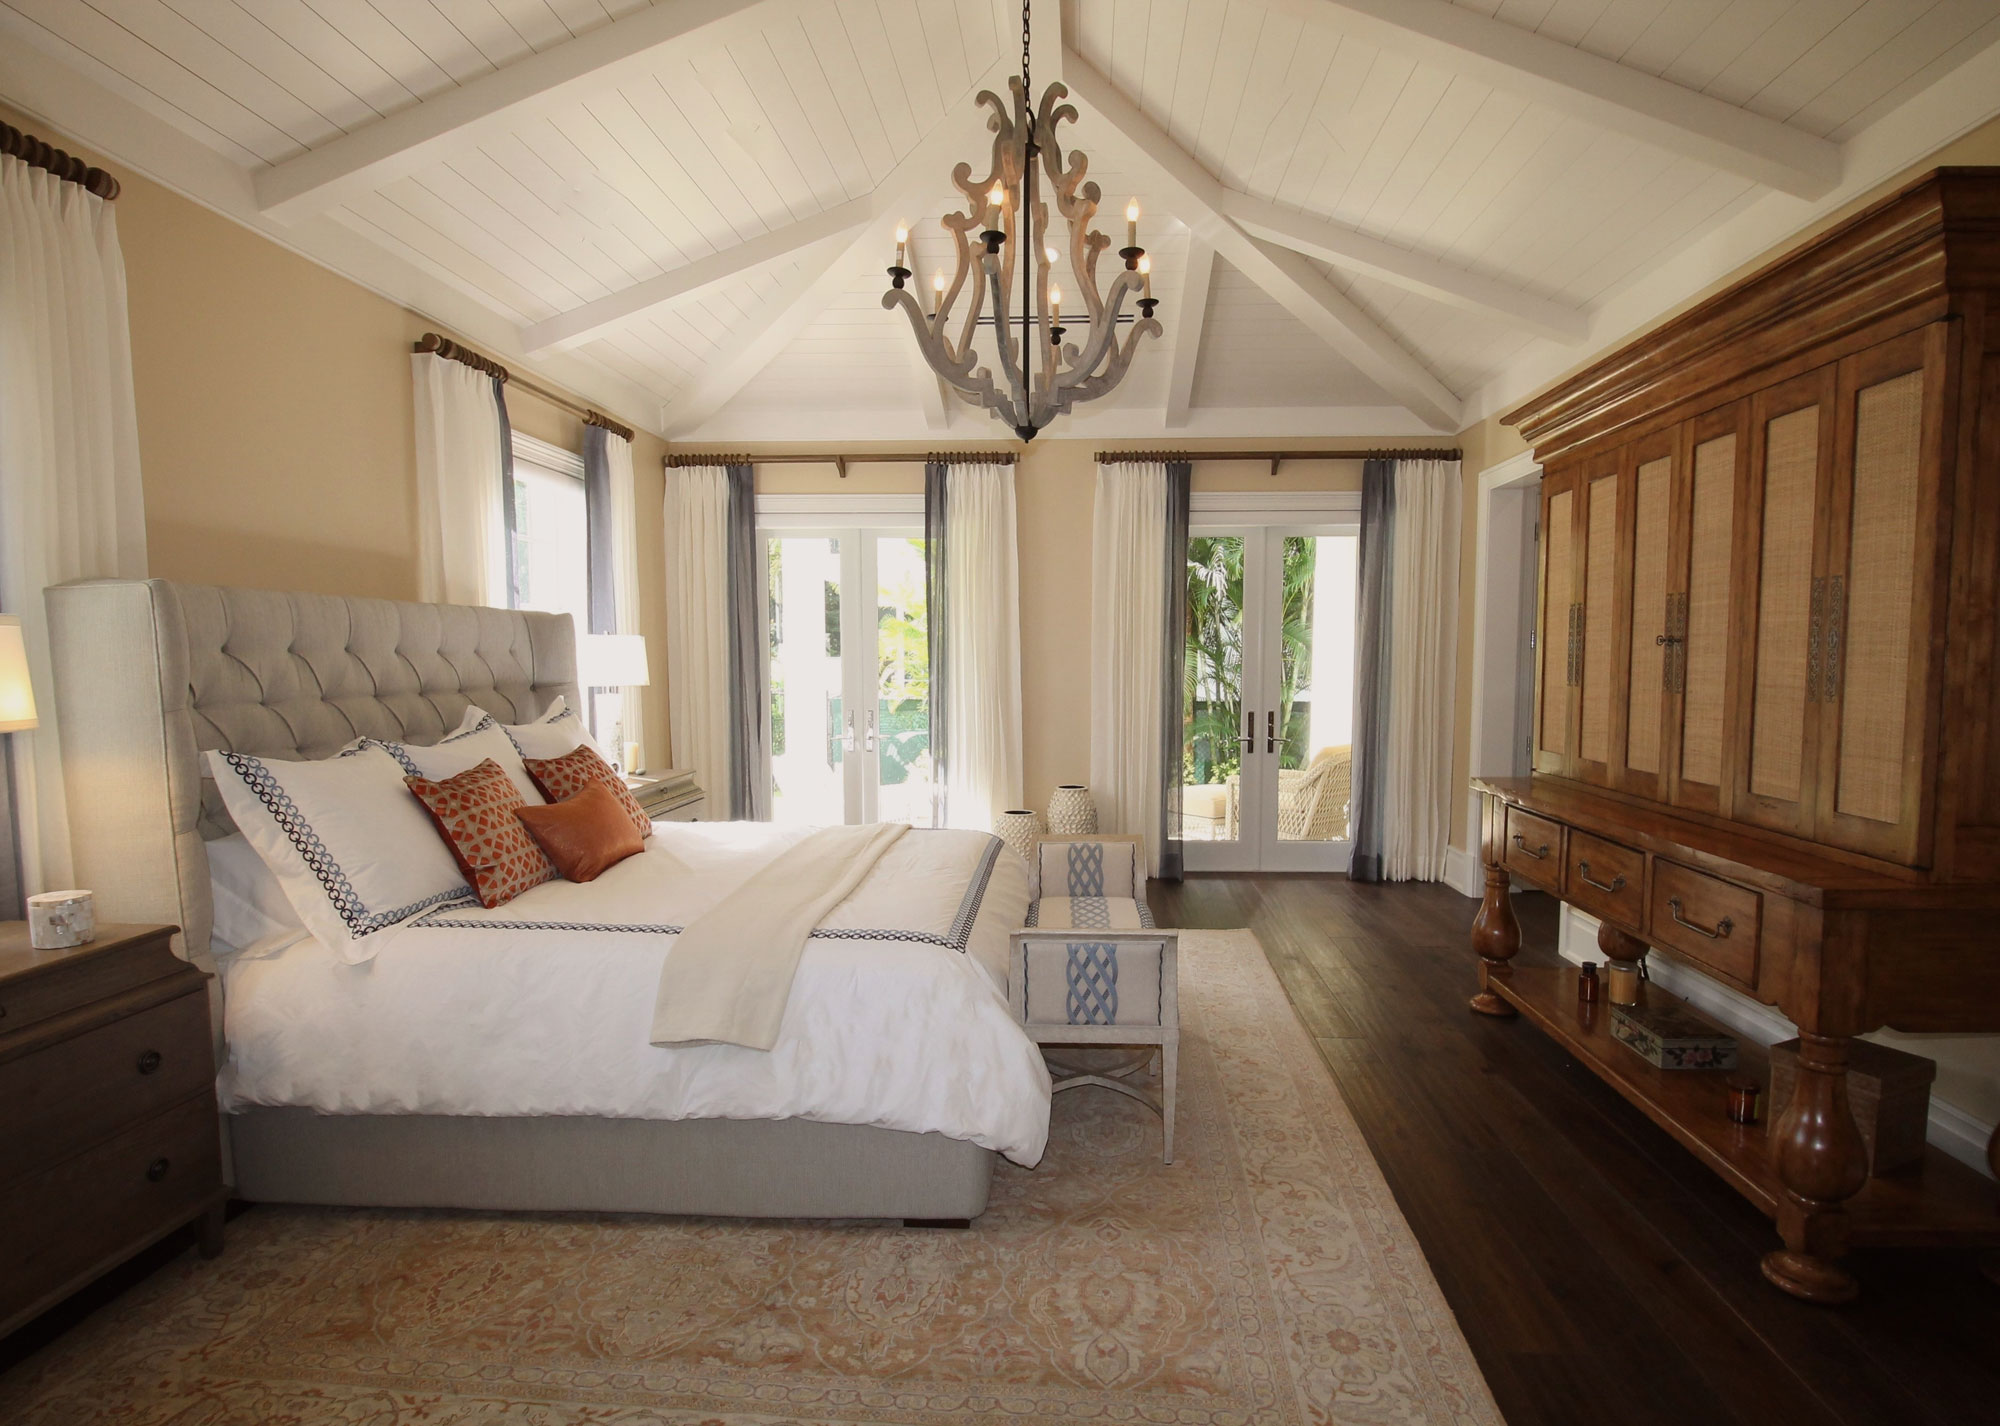 Bed room with High Ceiling